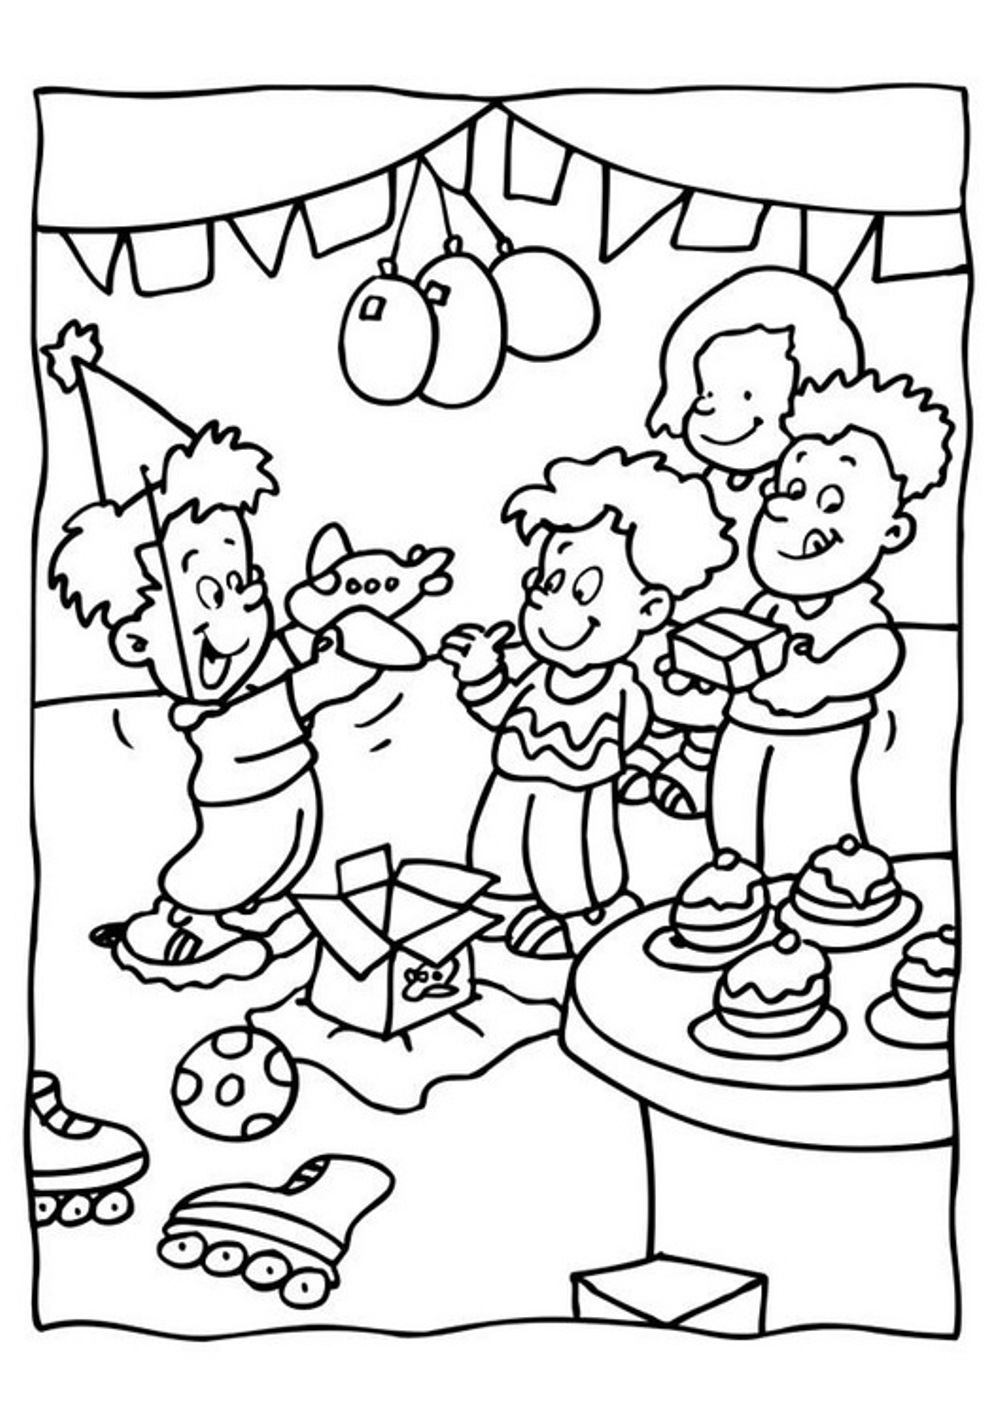 birthday party coloring sheets ; Coloring_Pages_Birthday_Party_2